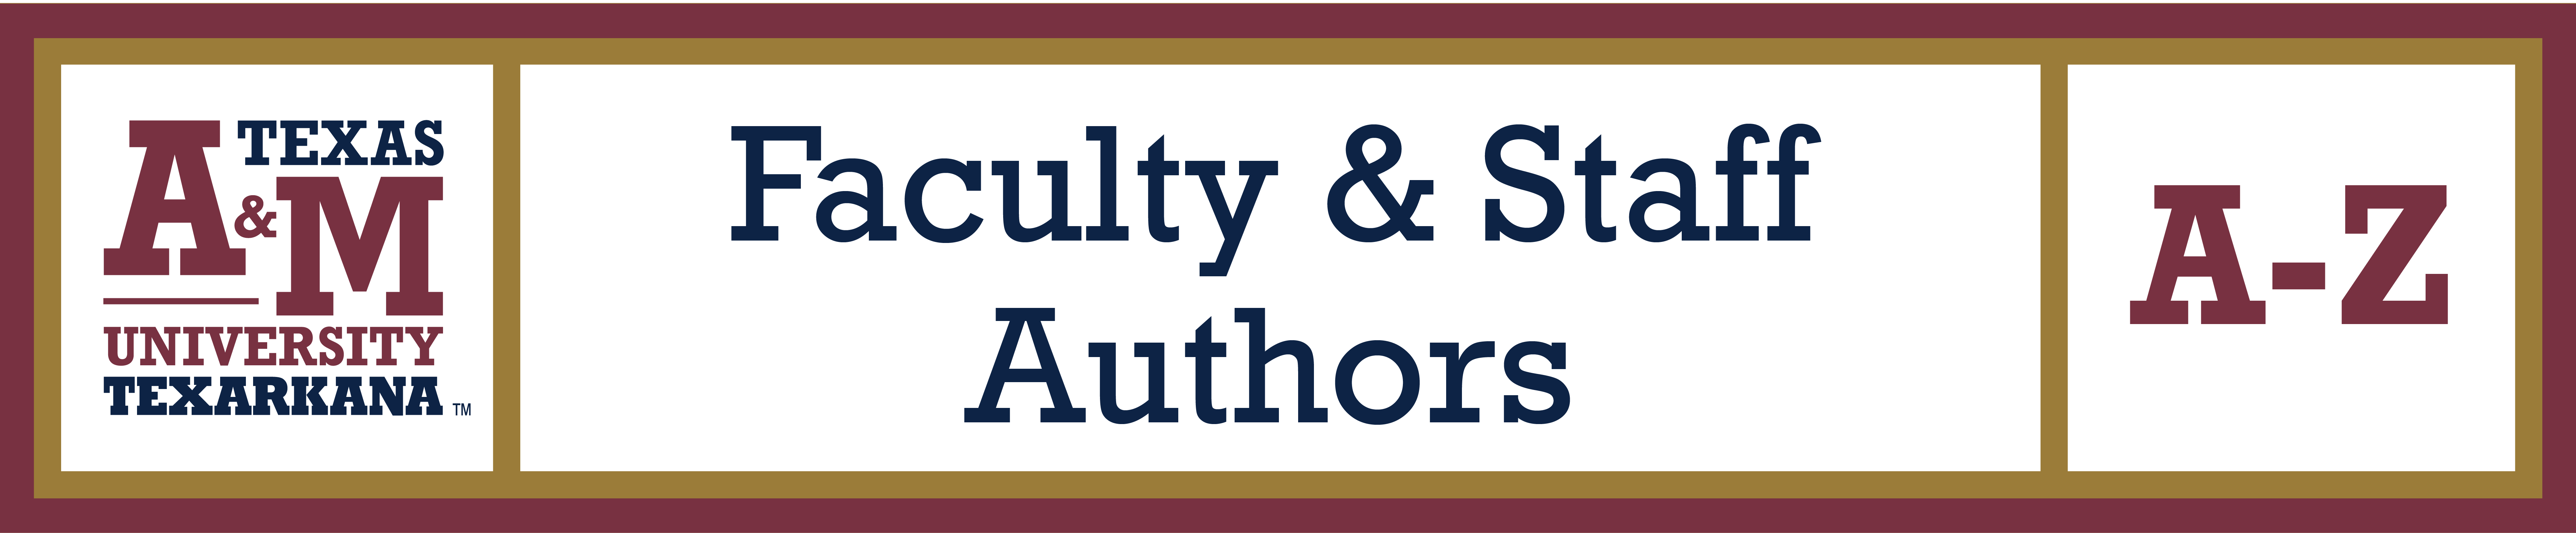 TAMUT Faculty & Staff Authors